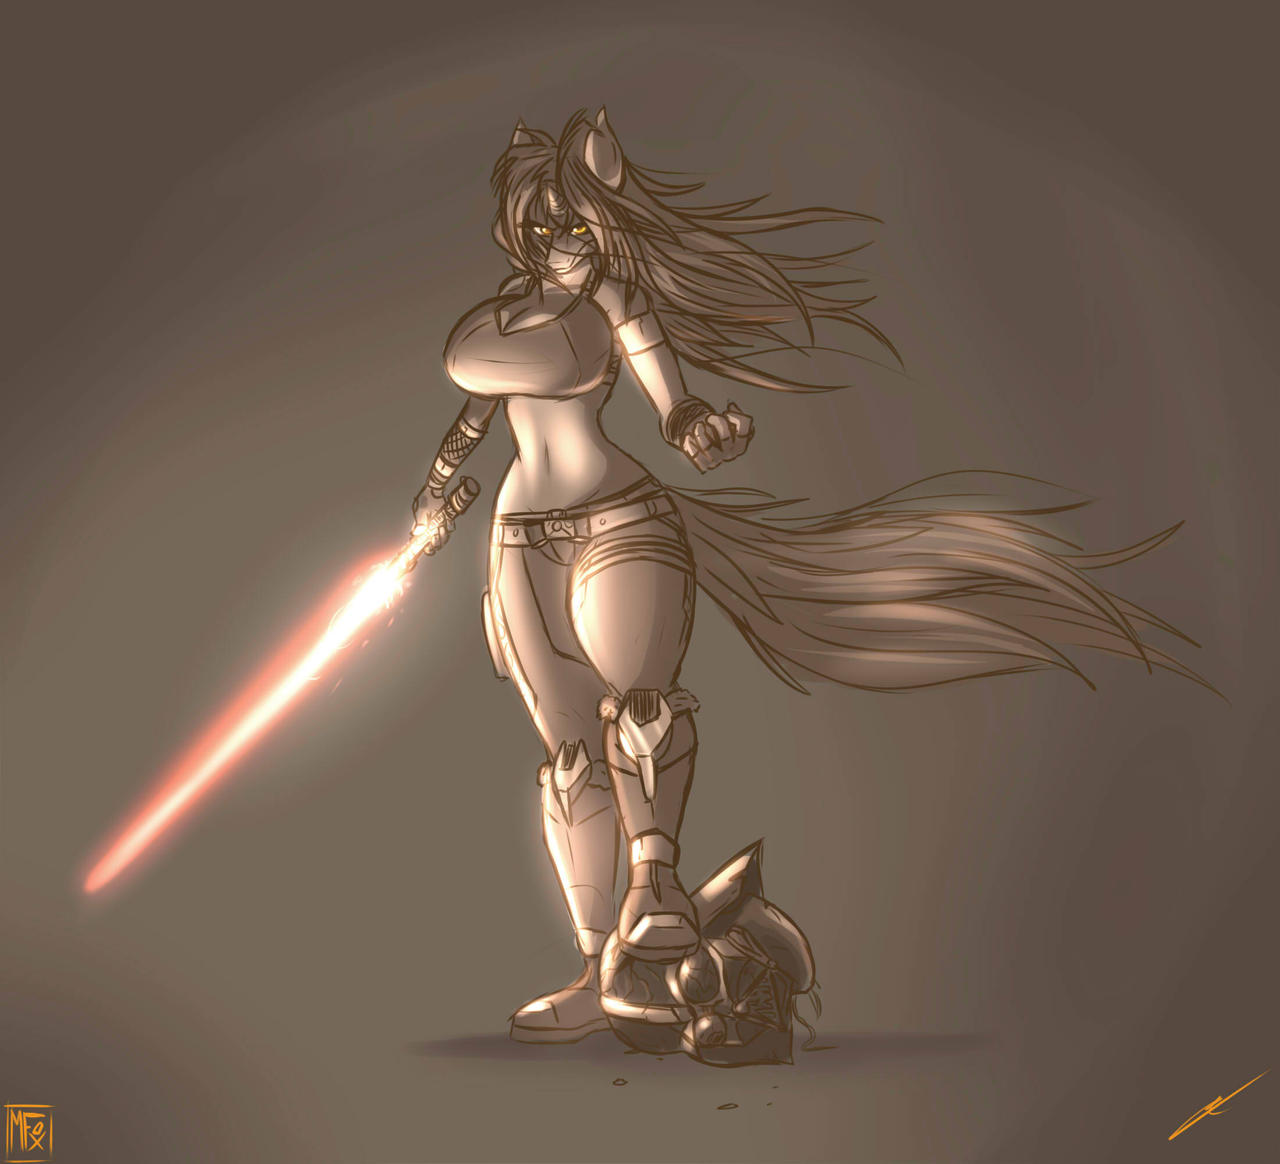 Fall of the Empire by metalfoxxx